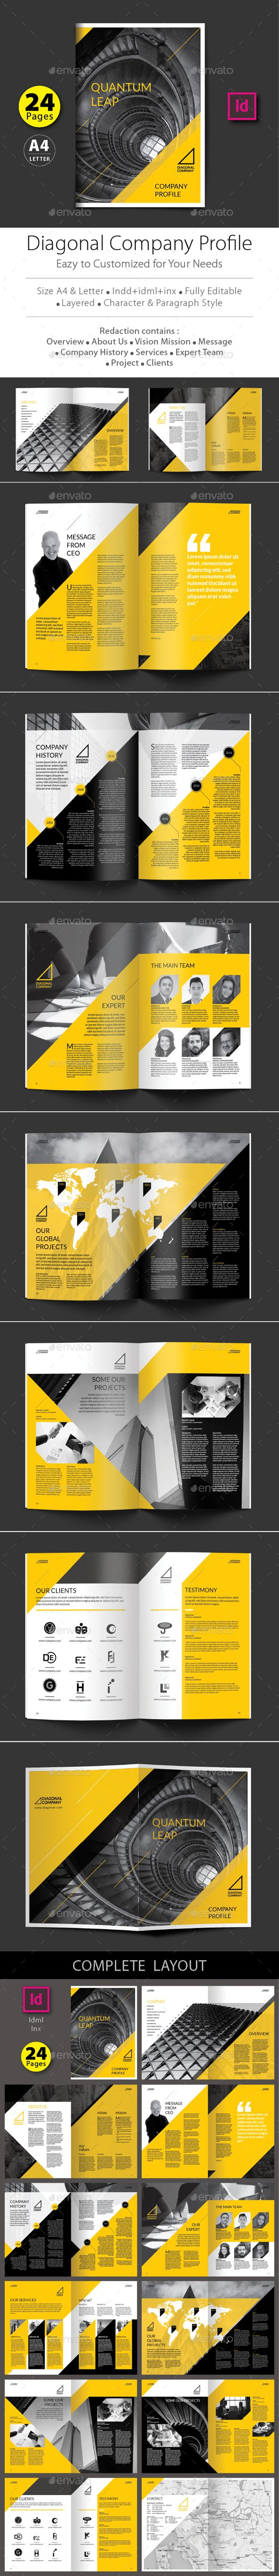 25 best compro images on Pinterest | Page layout, Editorial design ...